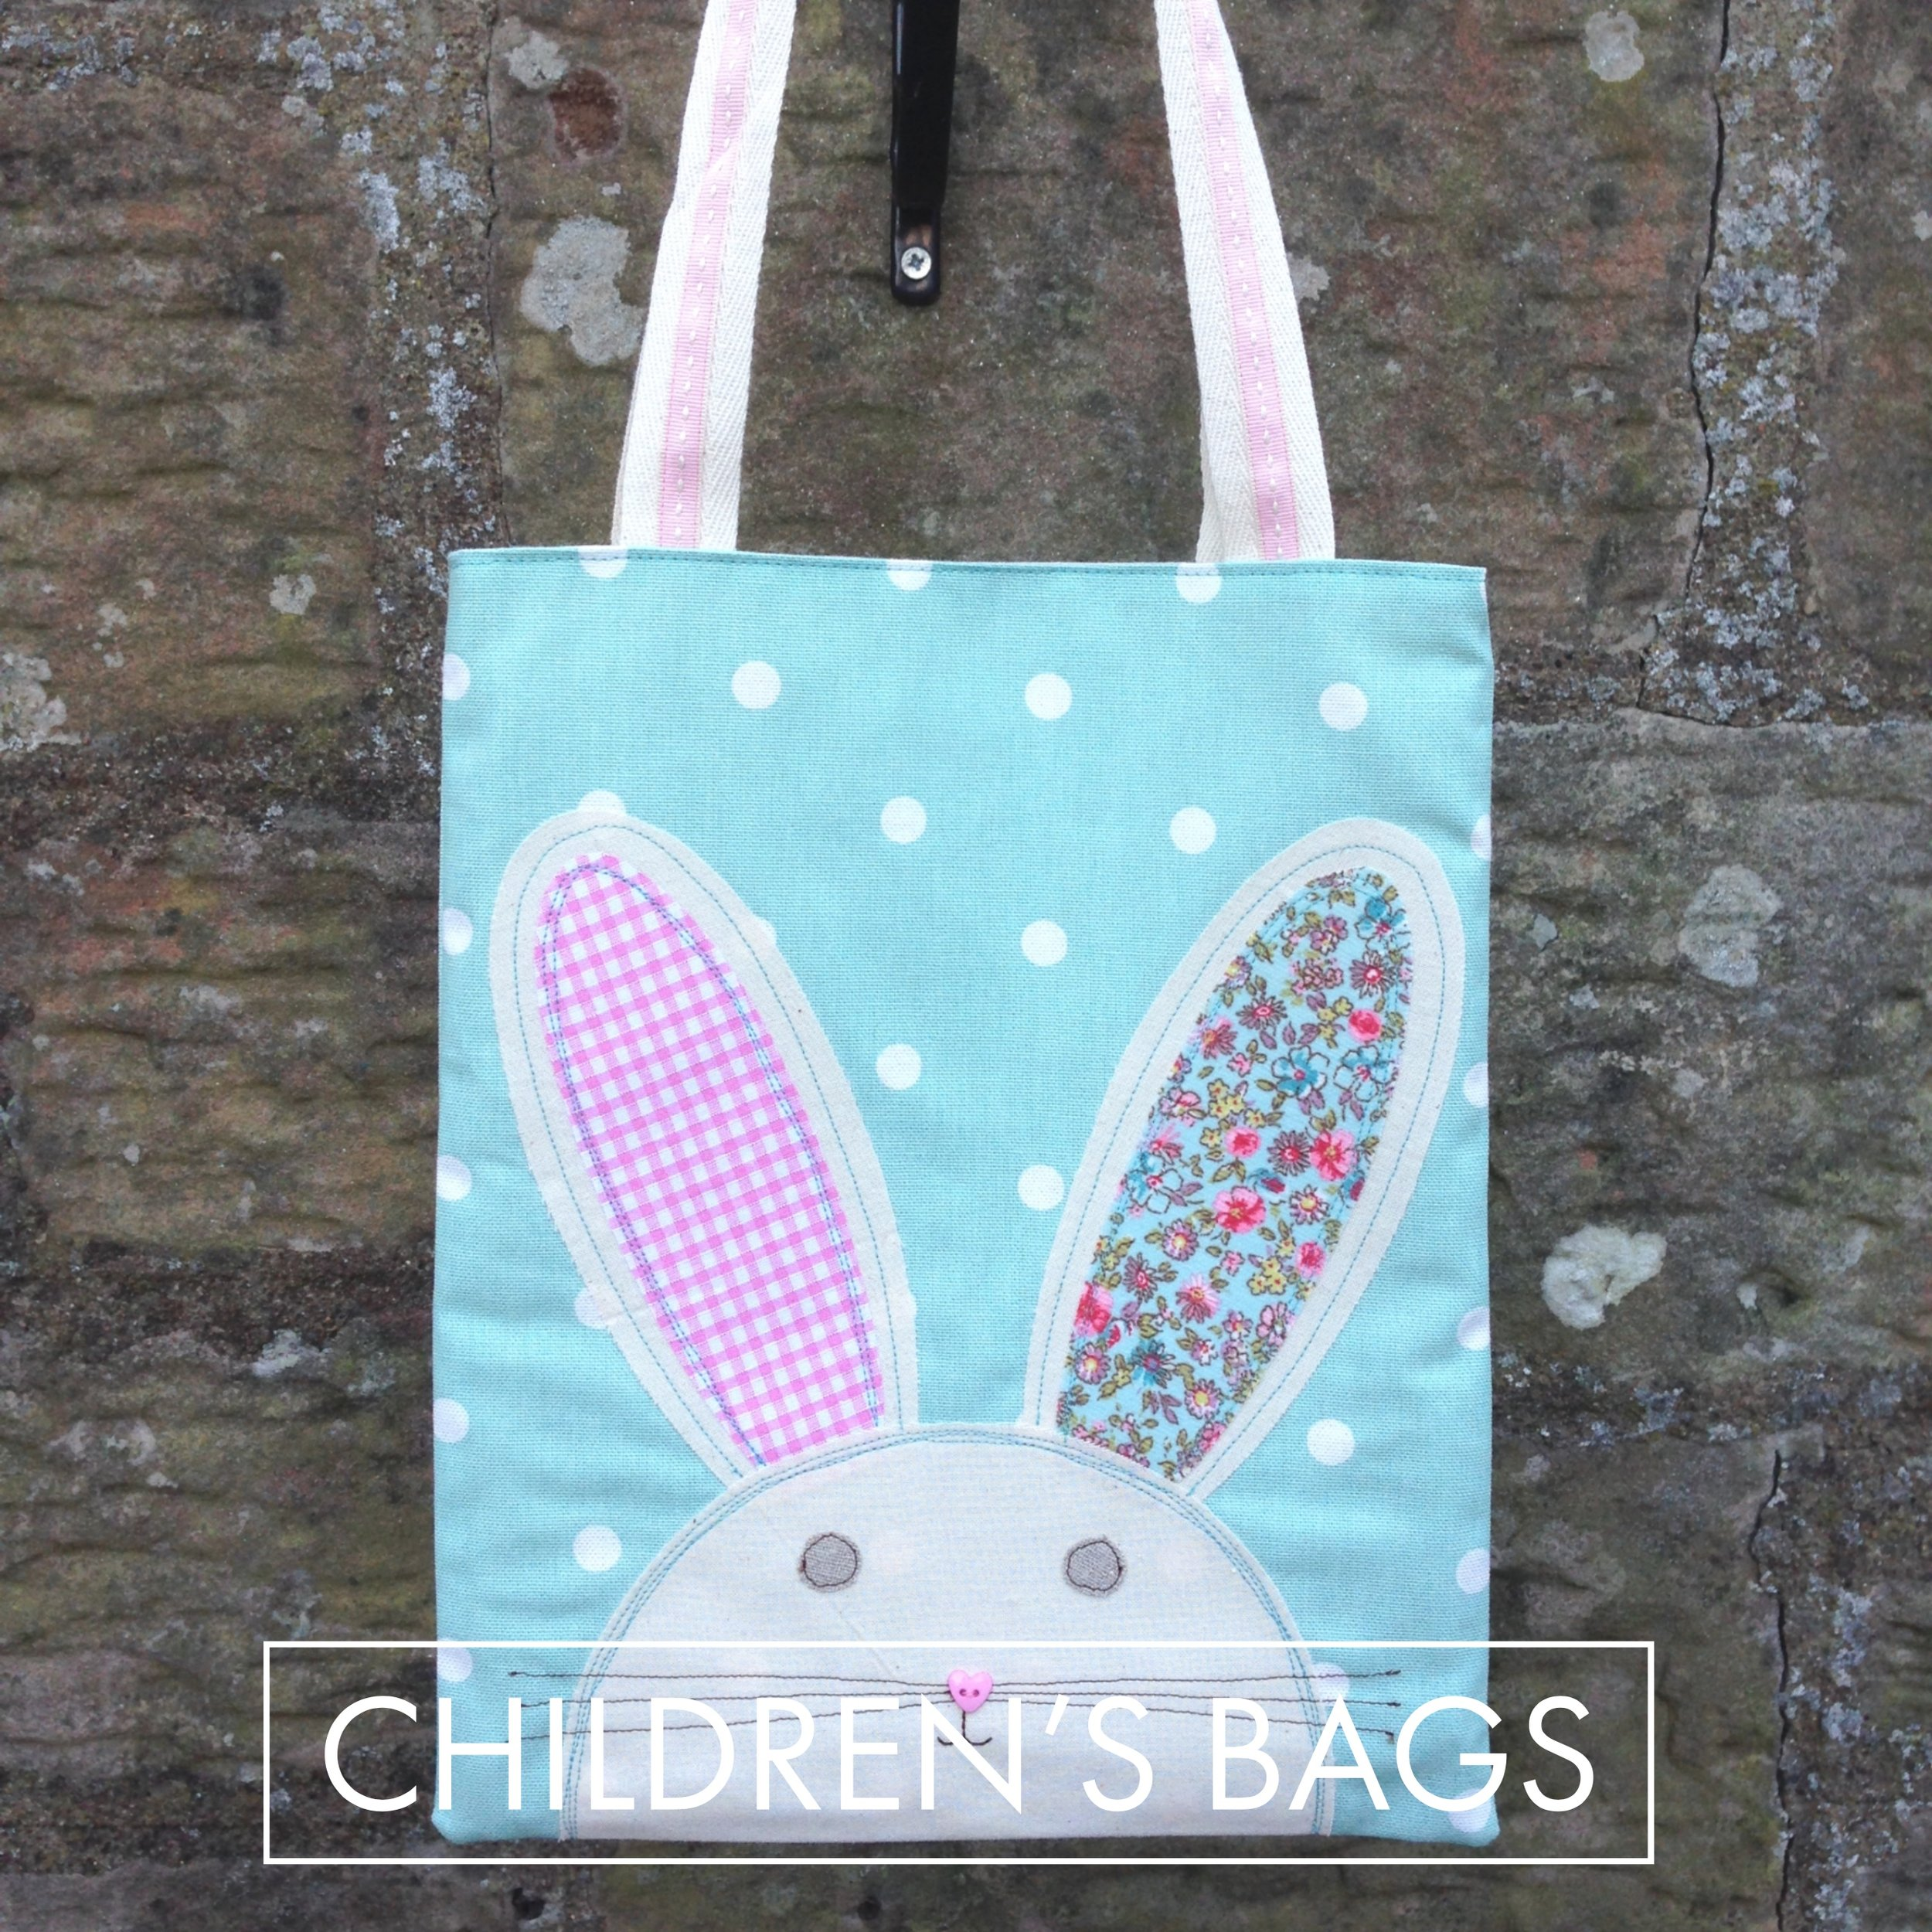 Category Children's Bags.jpg